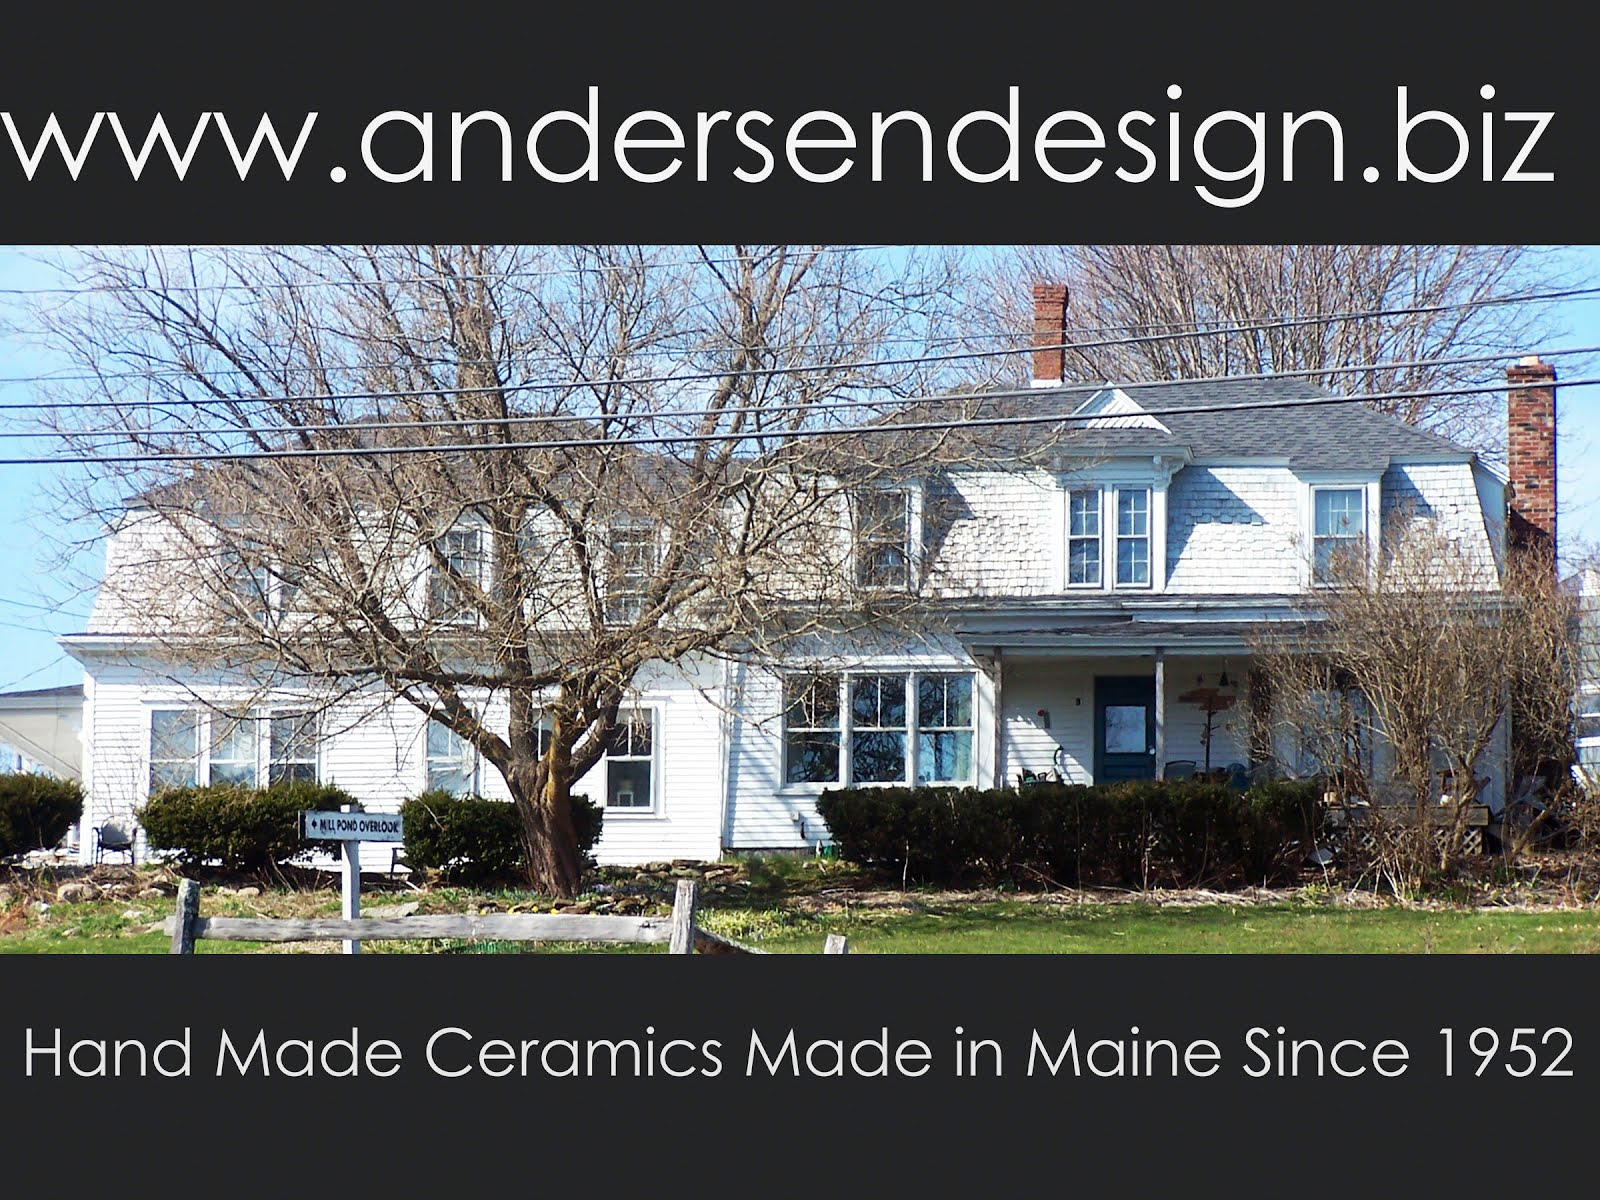 The Home of Andersen Design from 1958 to 2017